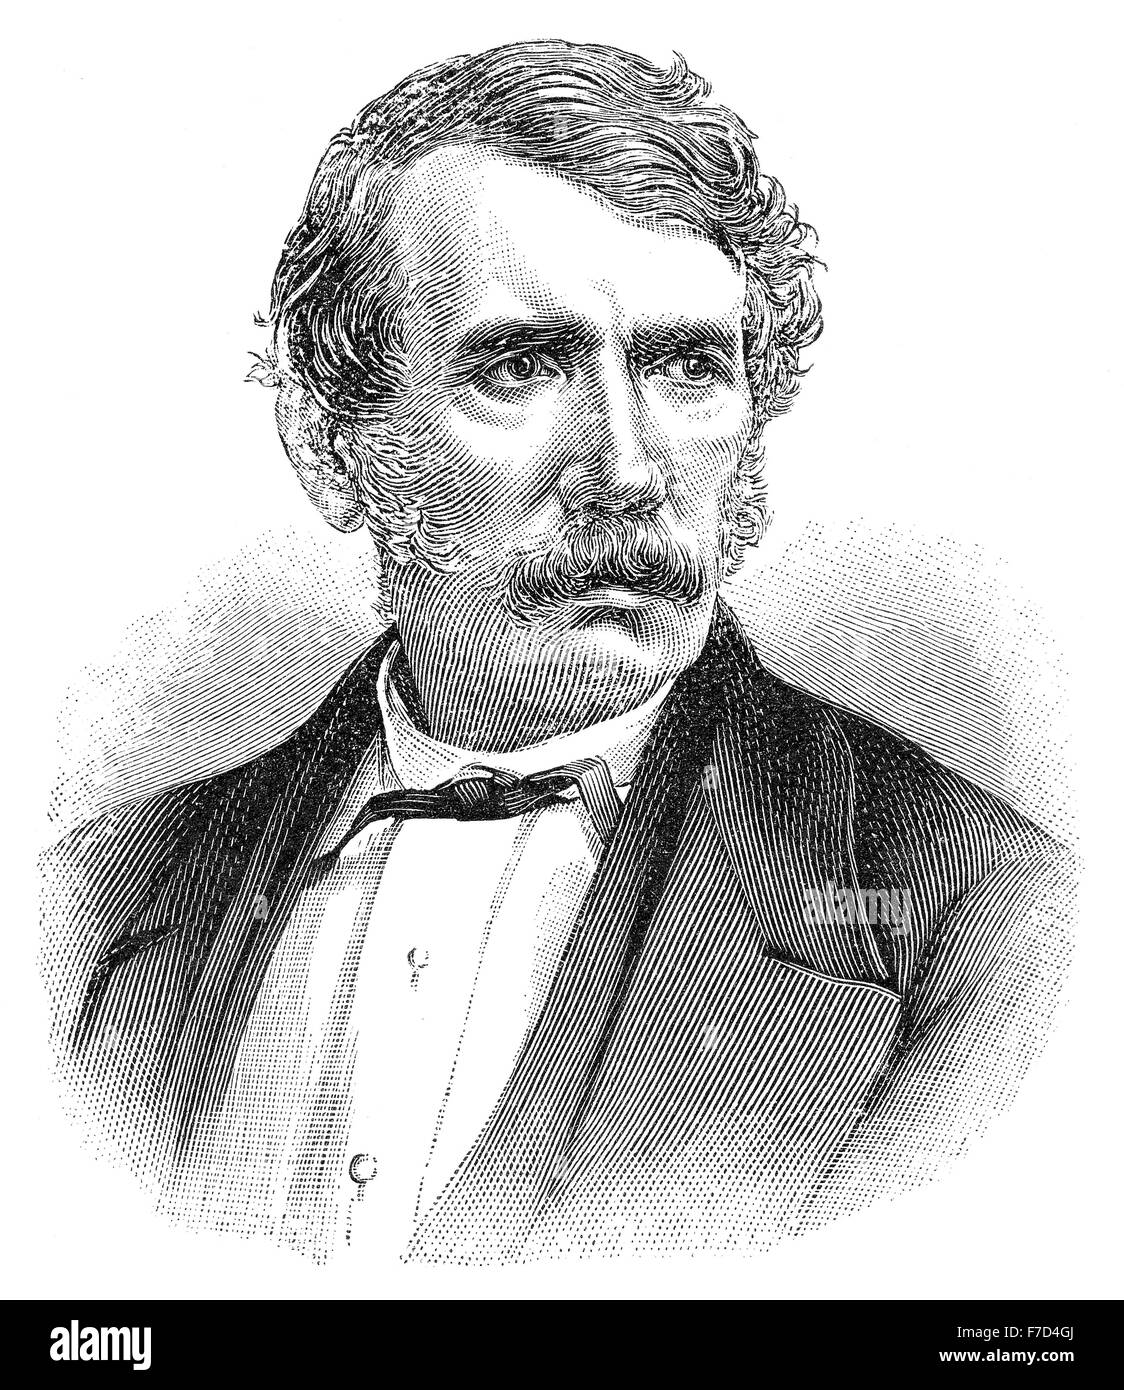 David Livingstone, 1813 - 1873, a Scottish missionary and explorer in Africa - Stock Image